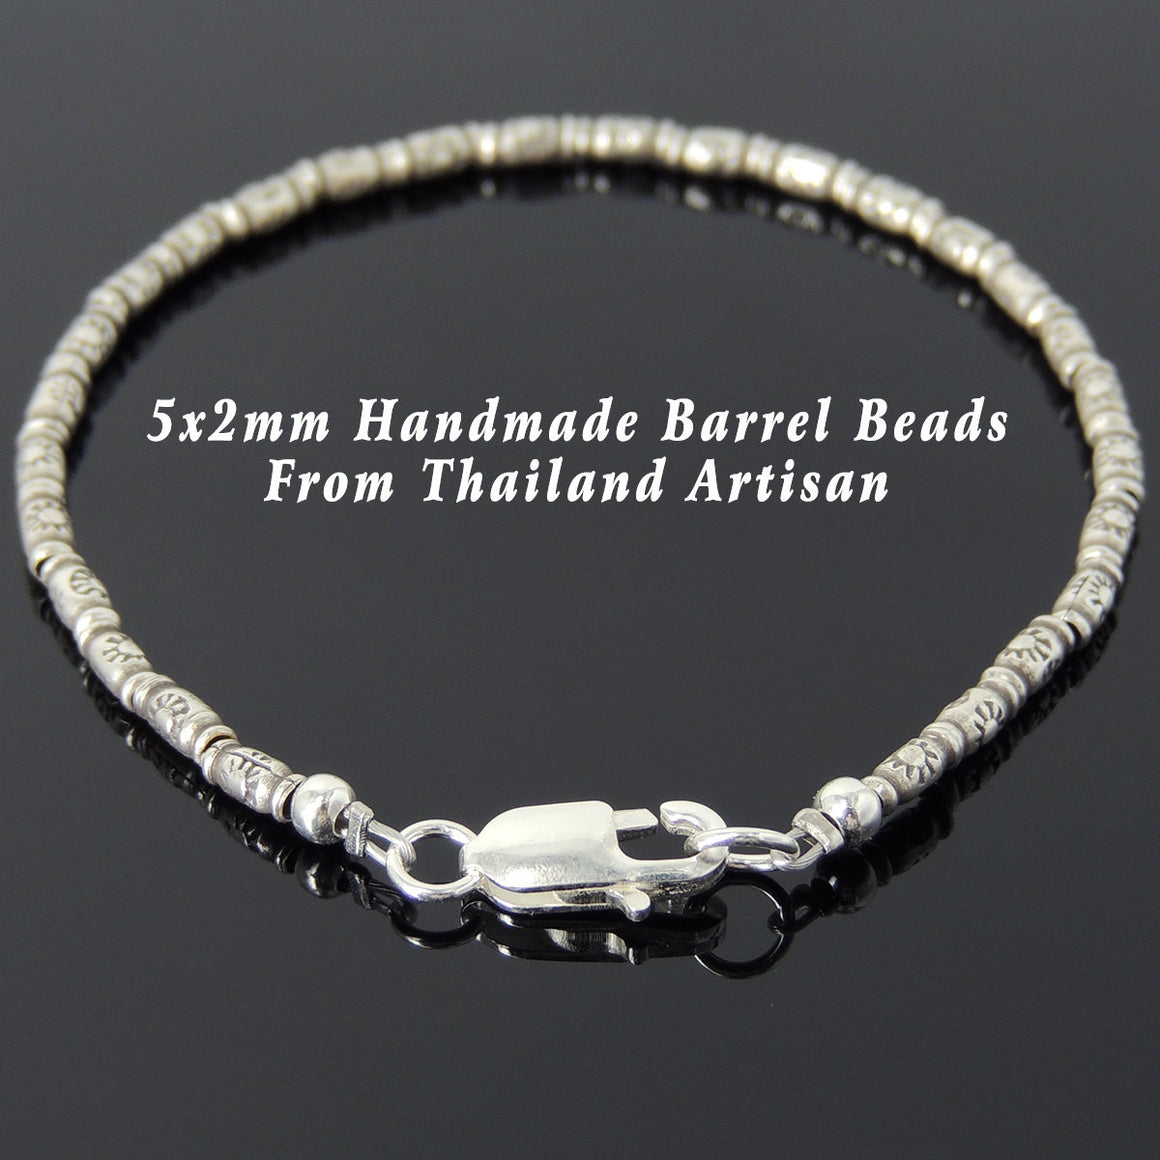 S925 Sterling Silver Handmade Vintage Sun Barrel Beads & Lobster Clasp - Handmade by Gem & Silver BR863